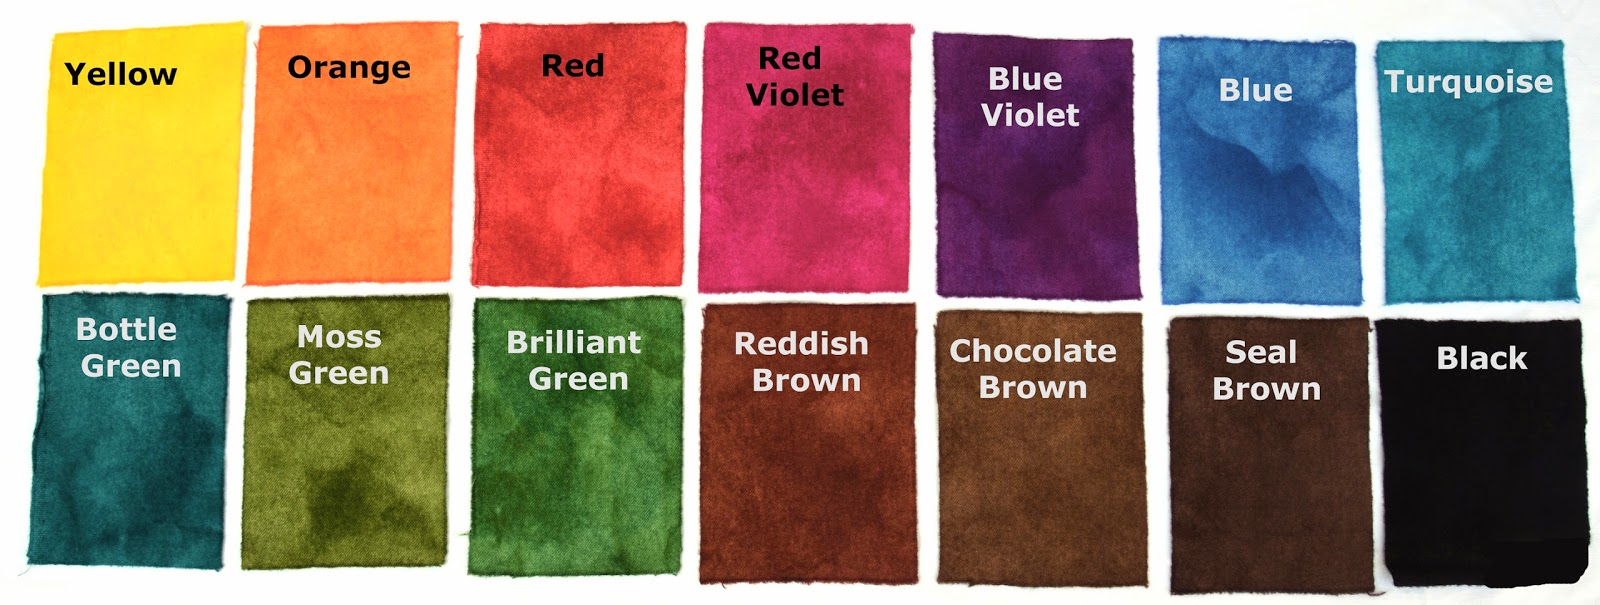 My Friend Starr Asked For A Colour Chart Majic Carpet Dyes And I Thought You Might Like It Too